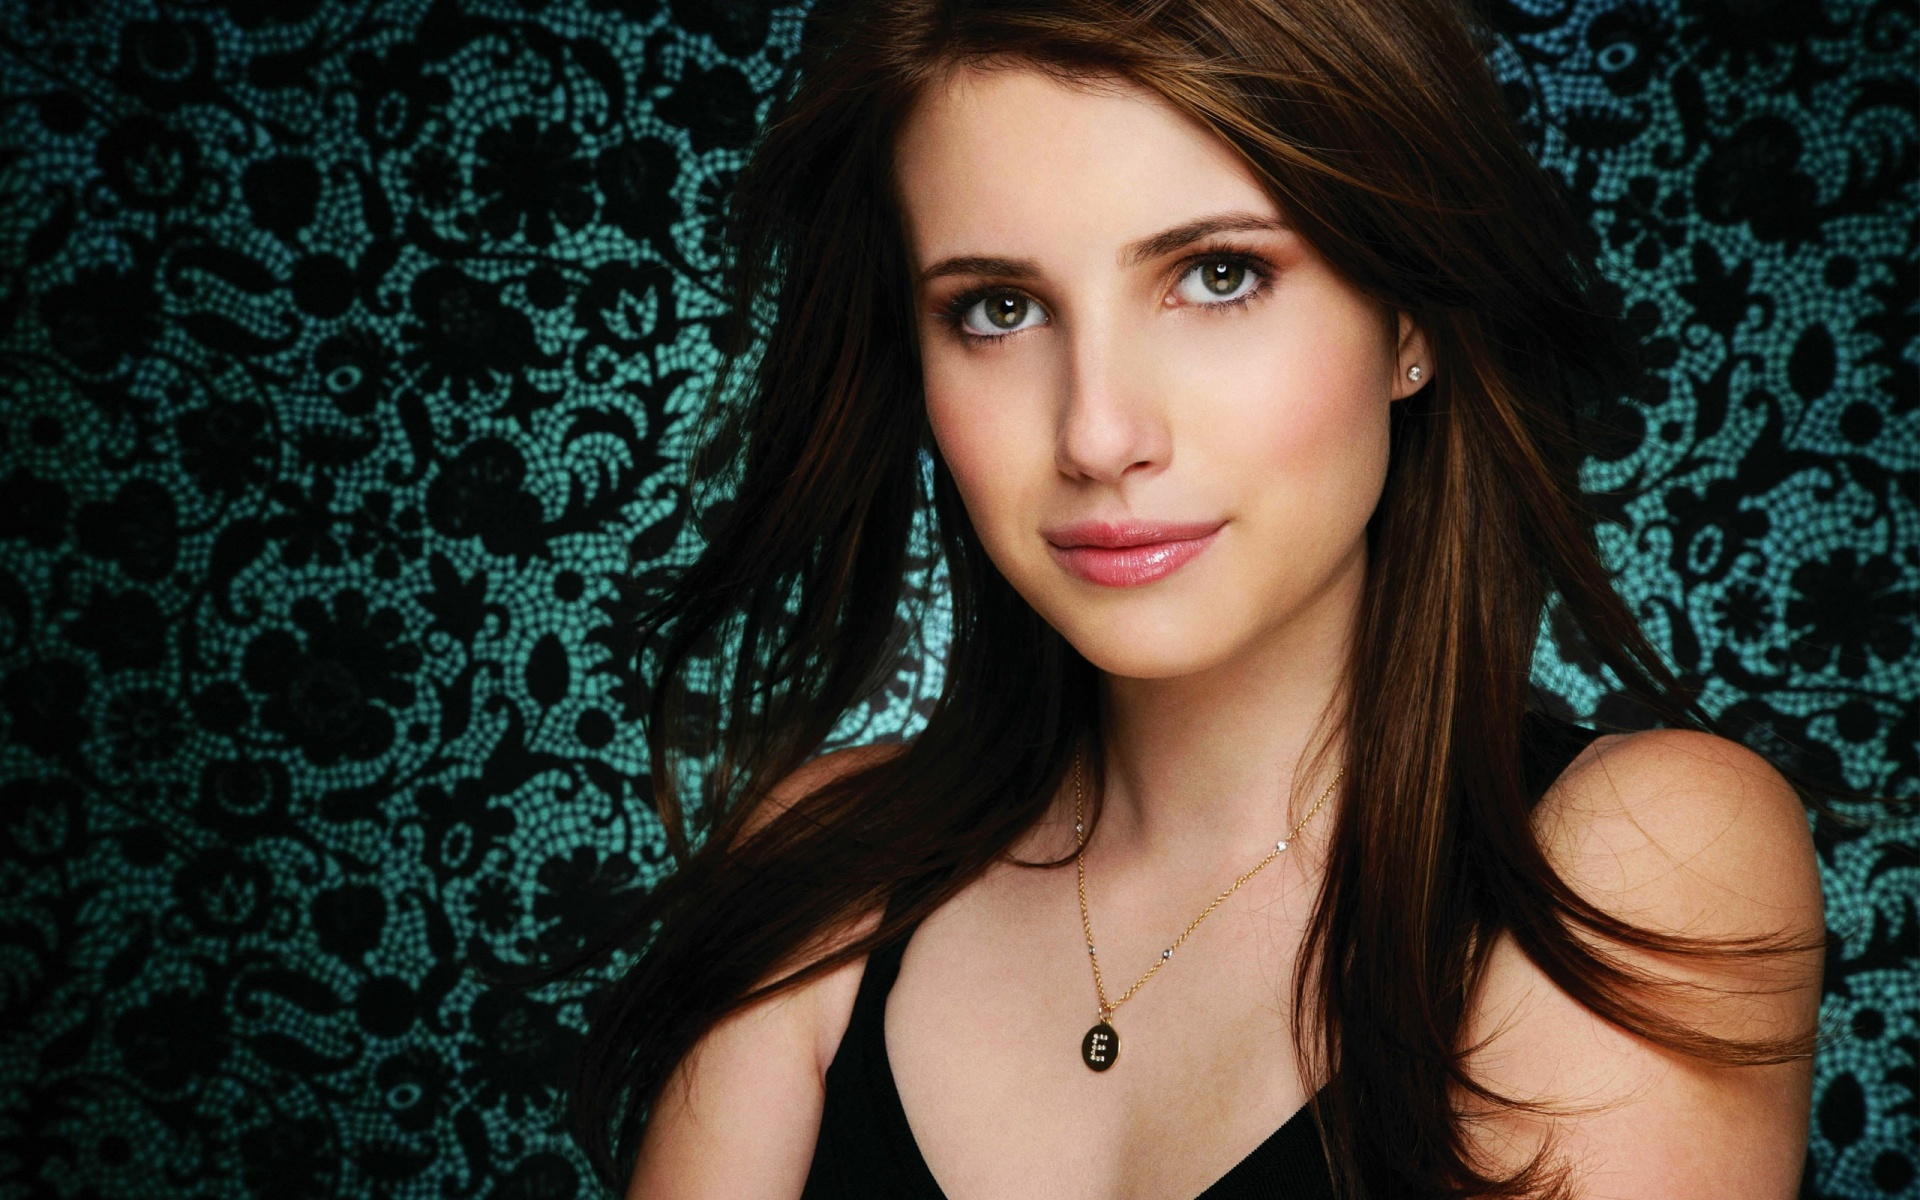 emma roberts wallpapers hd A10